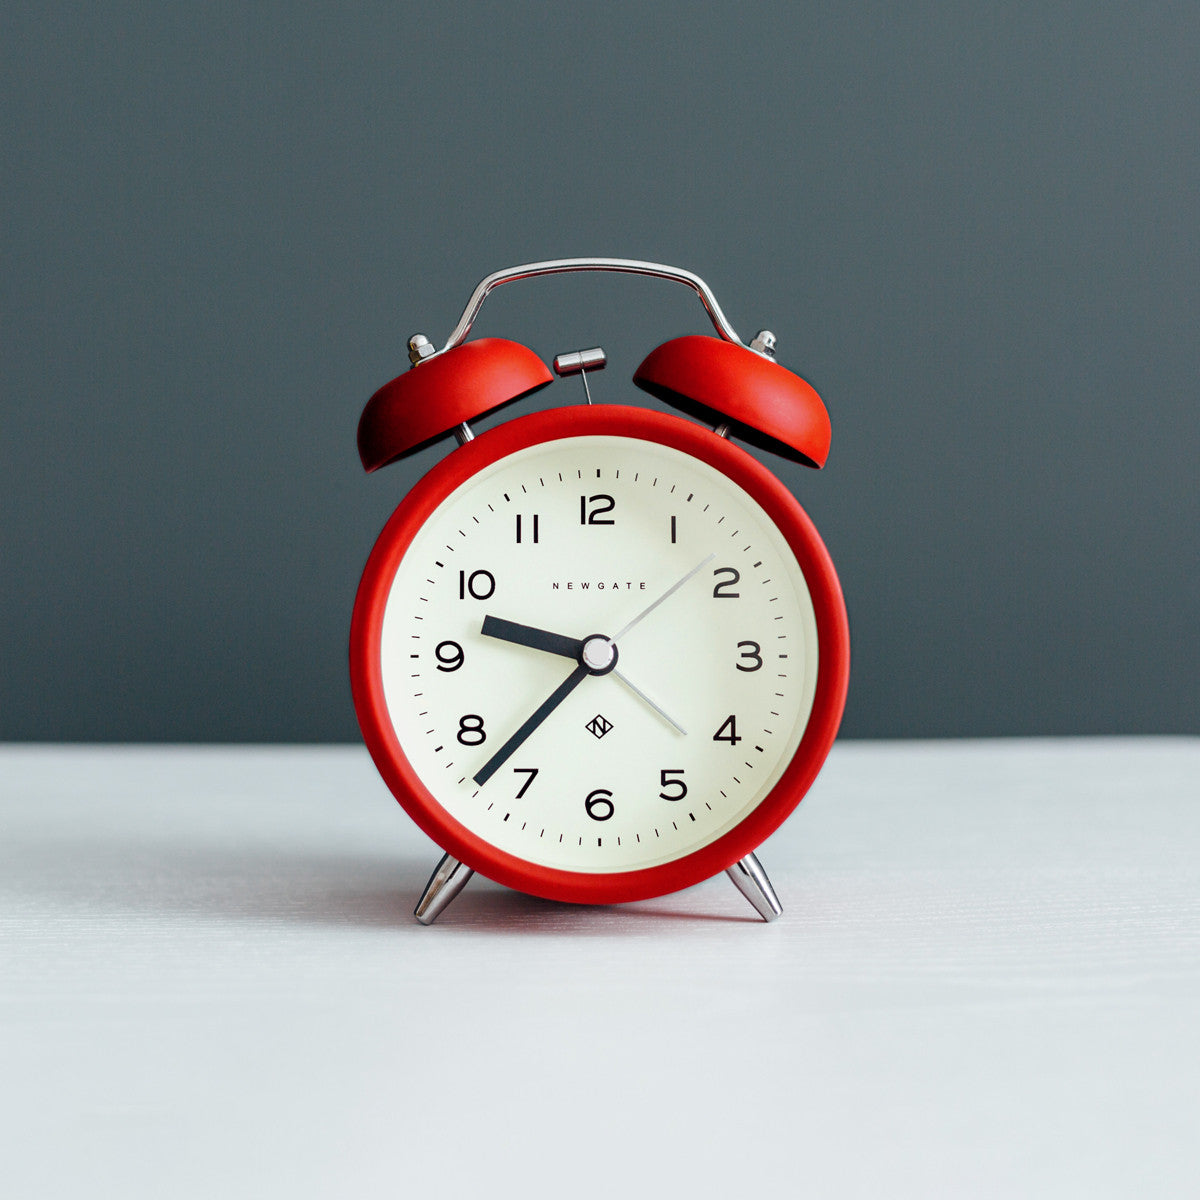 Charlie Bell Echo Alarm Clock In Fire Engine Red Design By Newgate